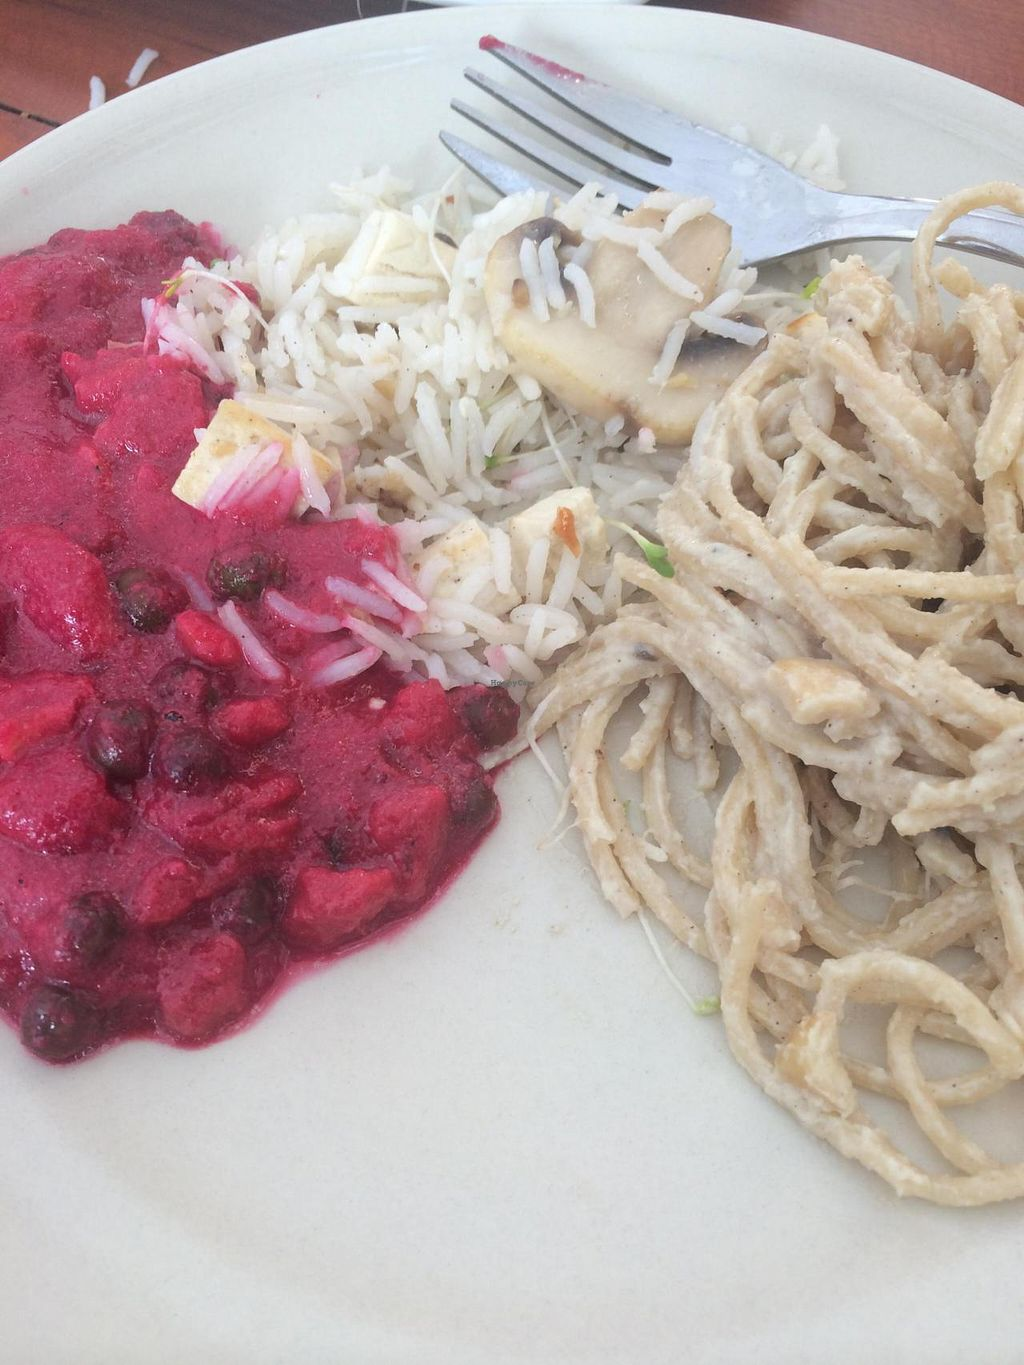 """Photo of CLOSED: Govinda  by <a href=""""/members/profile/JazzyCow"""">JazzyCow</a> <br/>Portions of a few different mains -- very rich tasting and filling! <br/> August 10, 2014  - <a href='/contact/abuse/image/39707/76604'>Report</a>"""